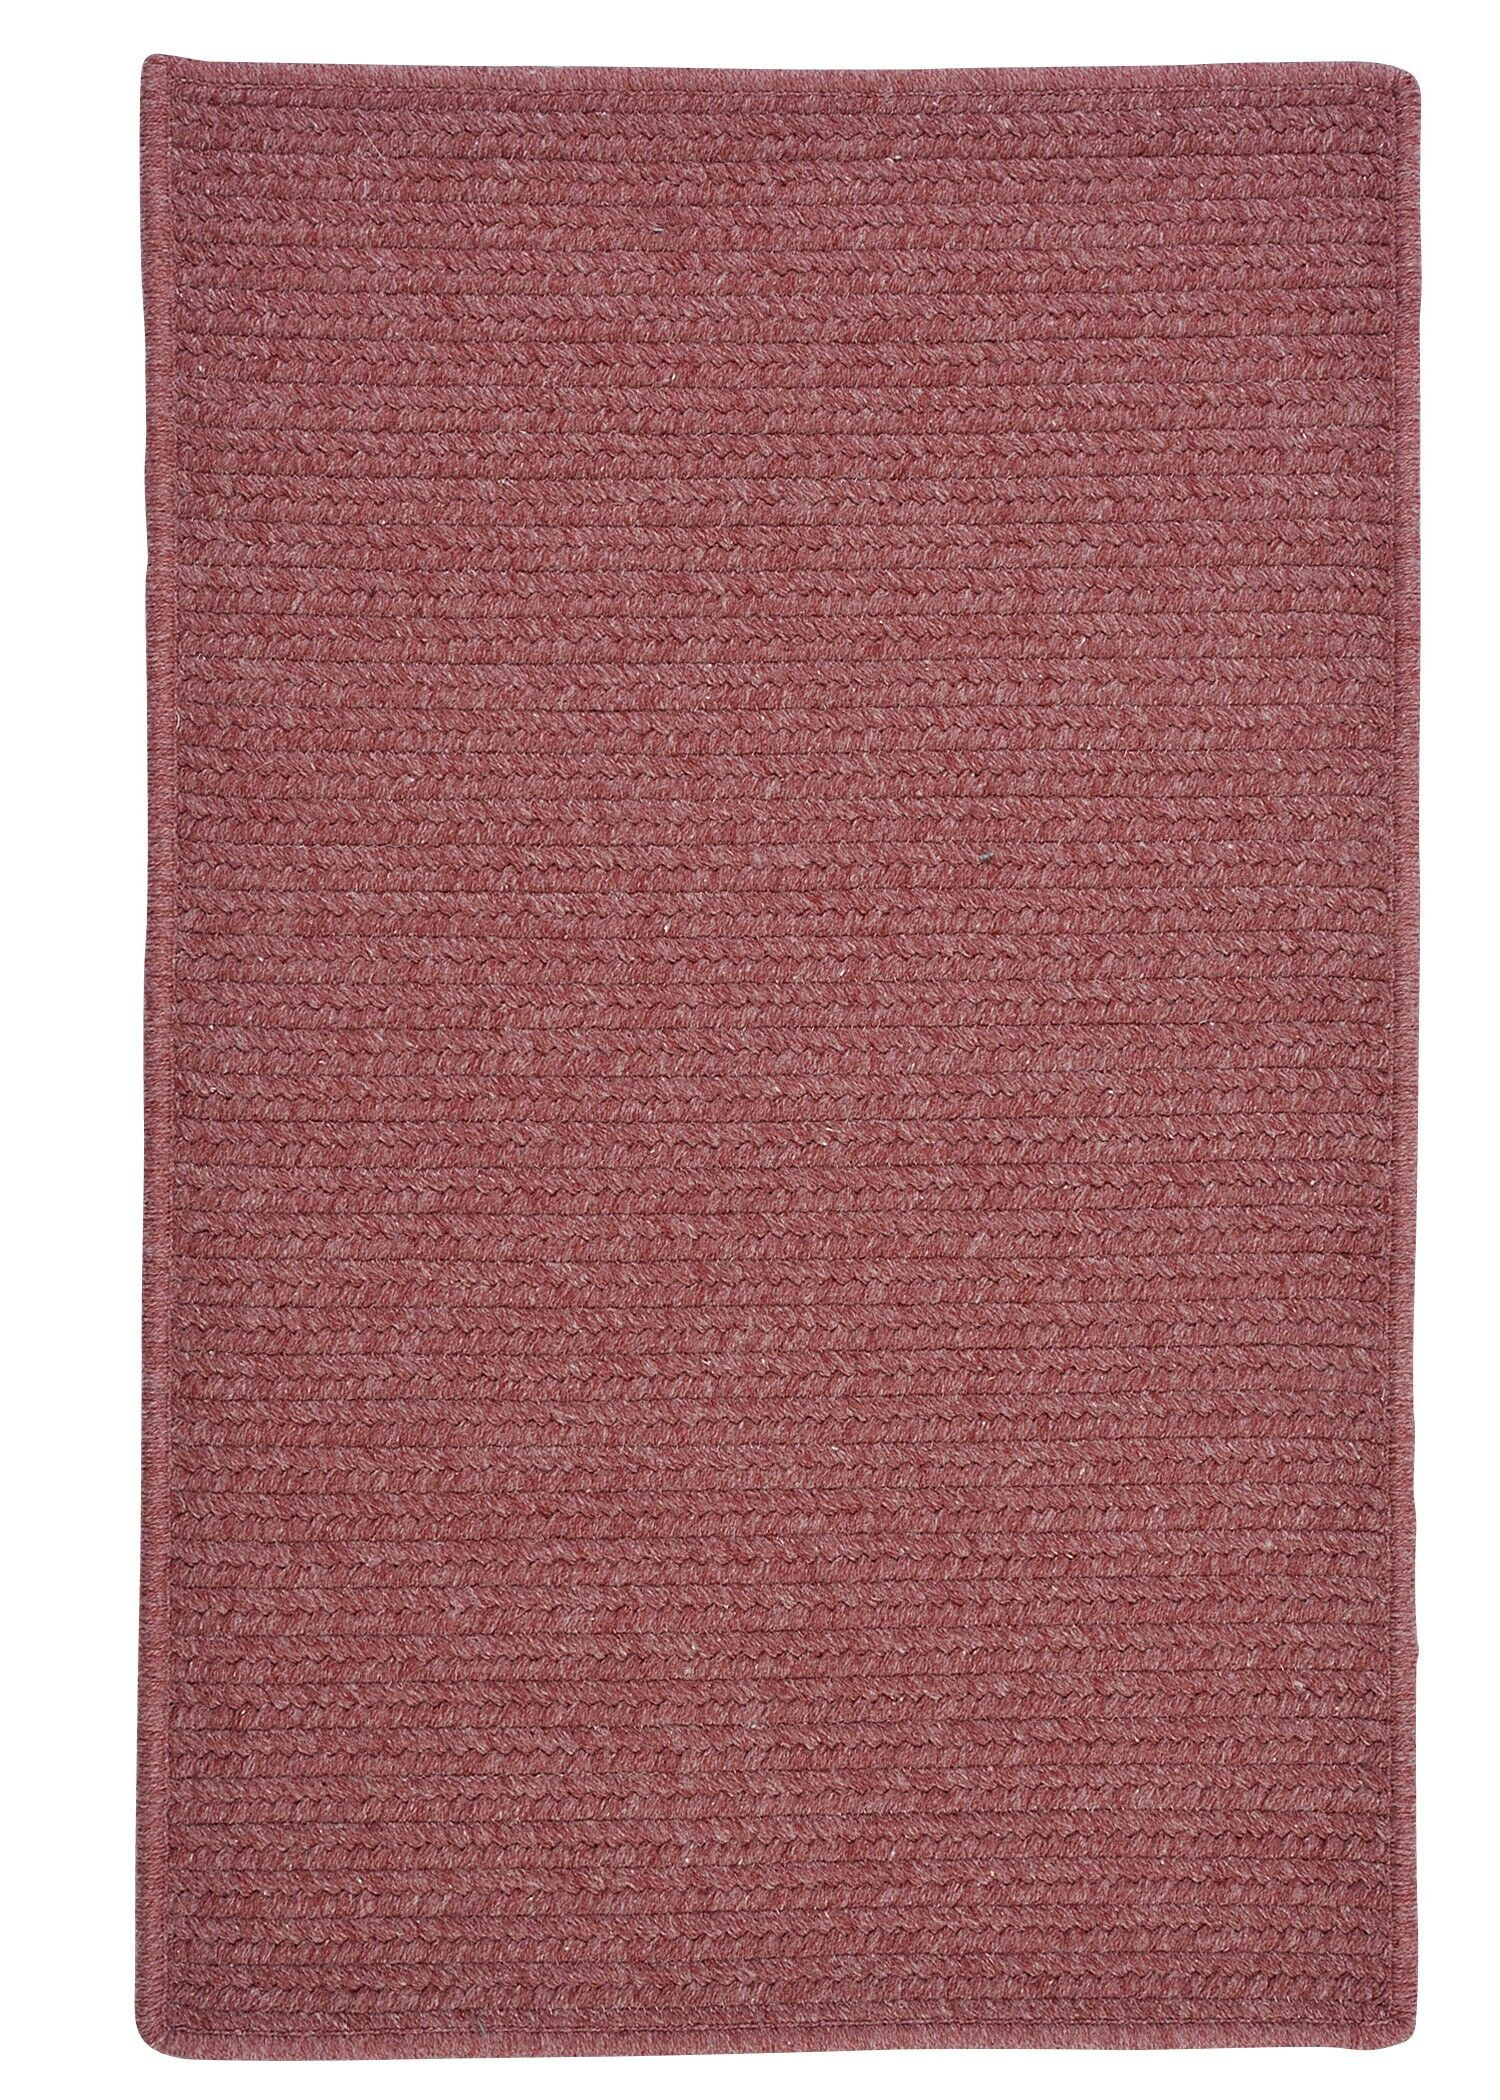 Courtyard Mauve Rug Rug Size: Rectangle 12' x 15'